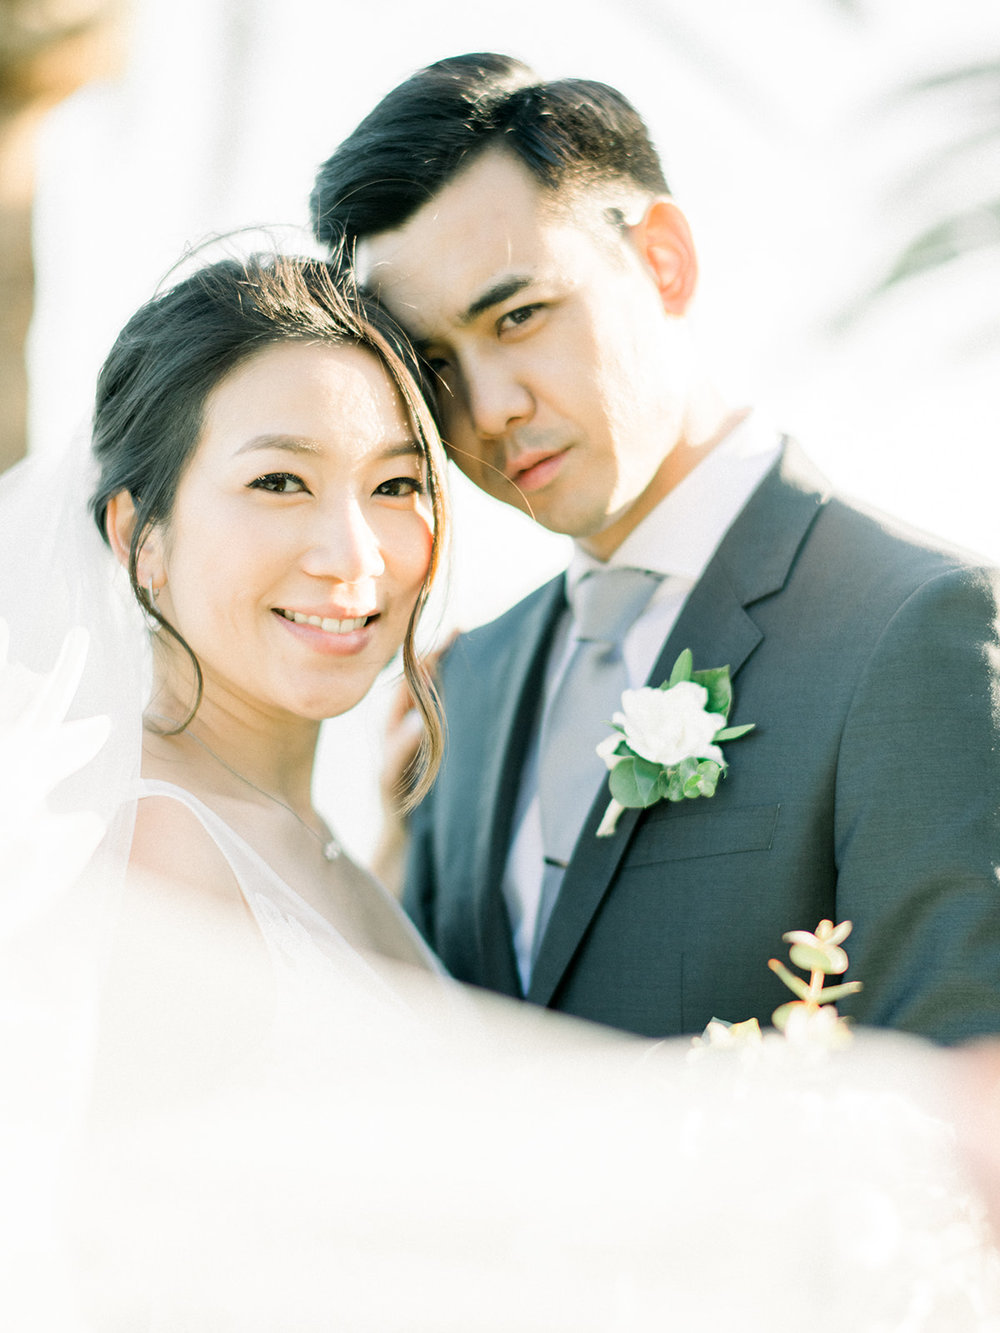 janiceandjeffrey-etherandsmith-wedding-1130.jpg